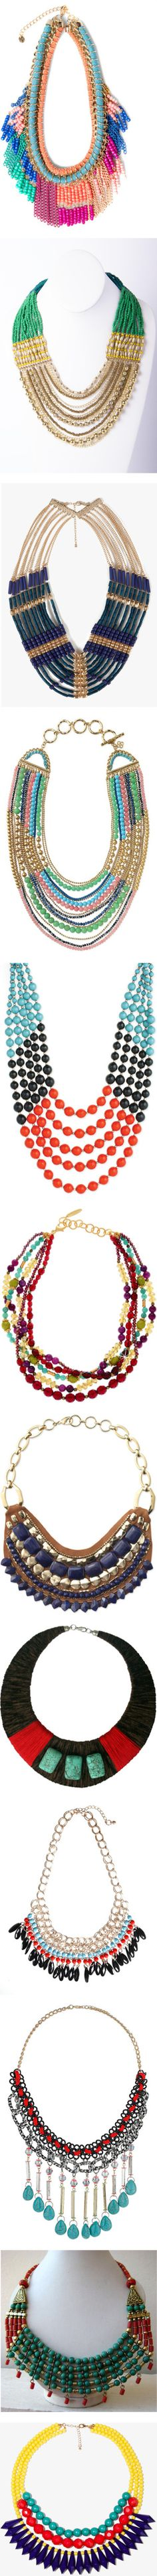 """Beaded Necklaces"" by dana-forlano on Polyvore"